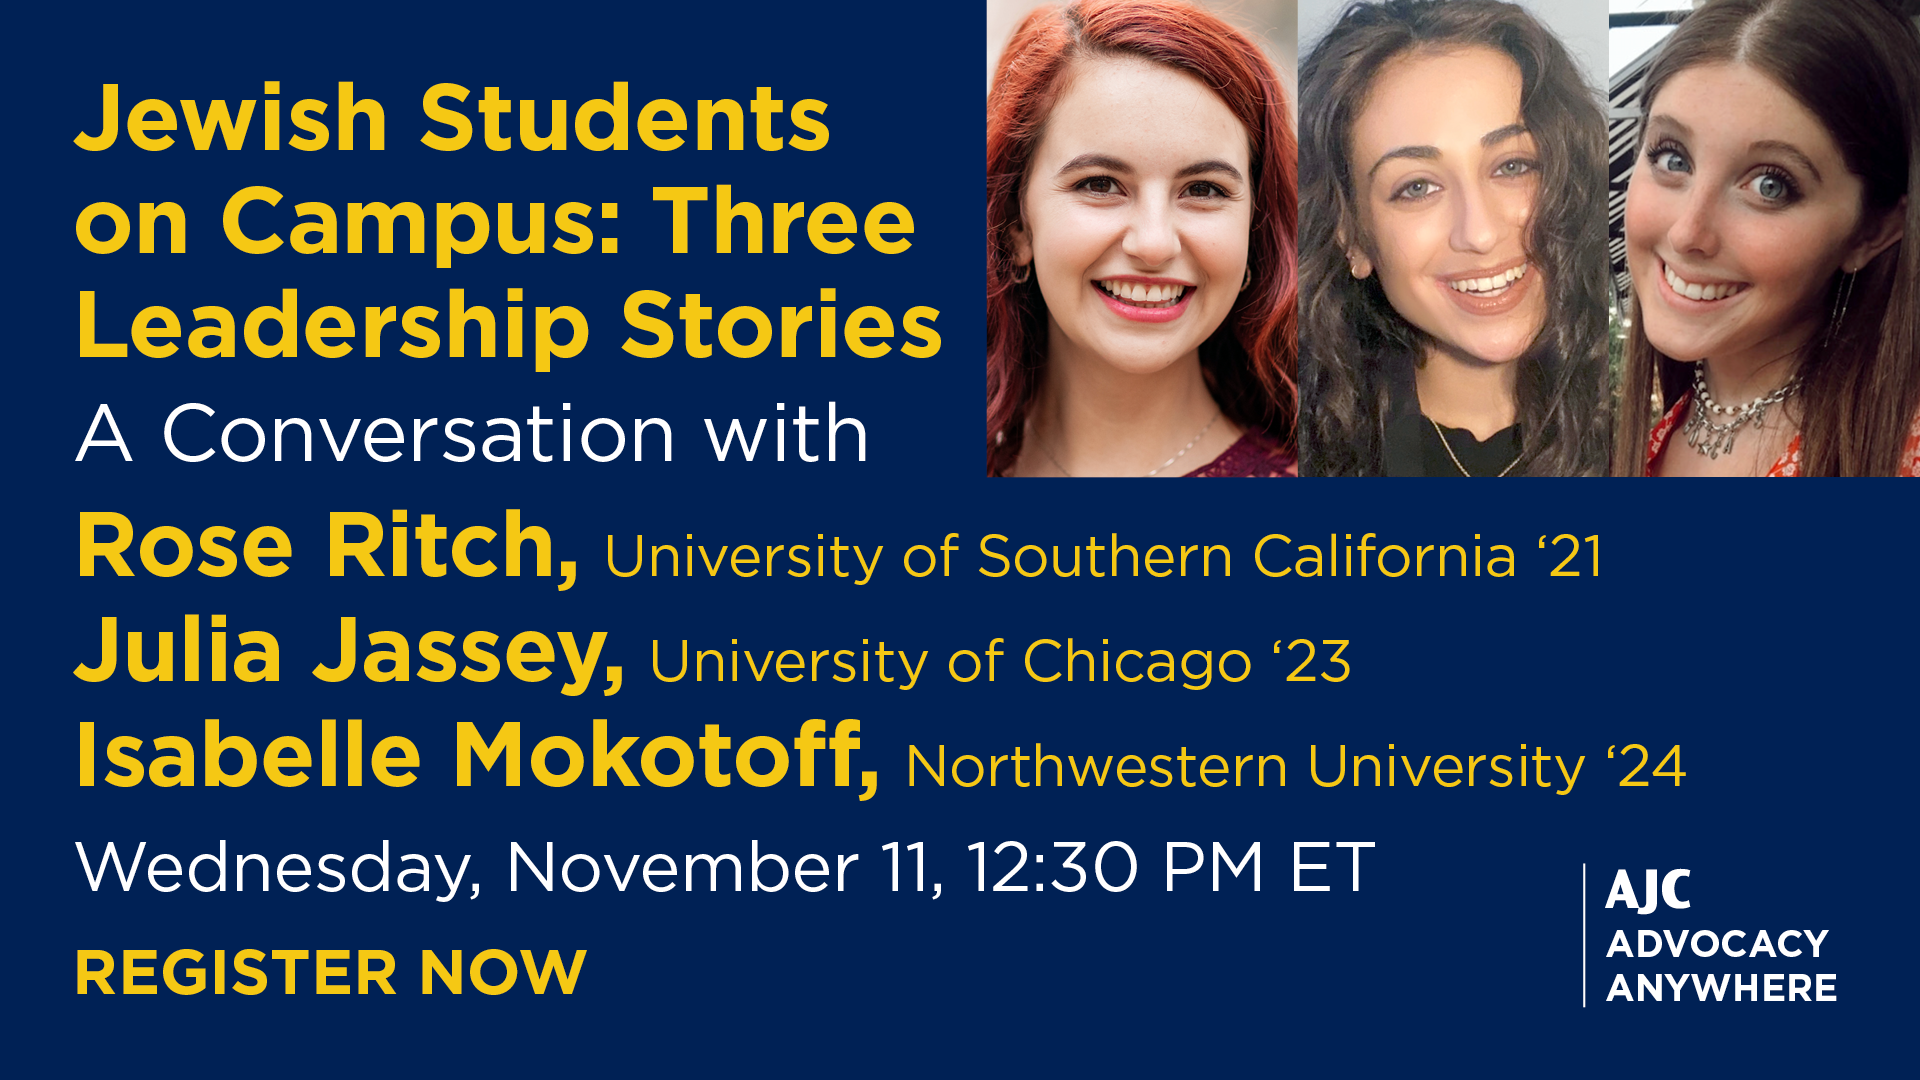 AJC Advocacy Anywhere - Jewish Students on Campus: Three Leadership Stories